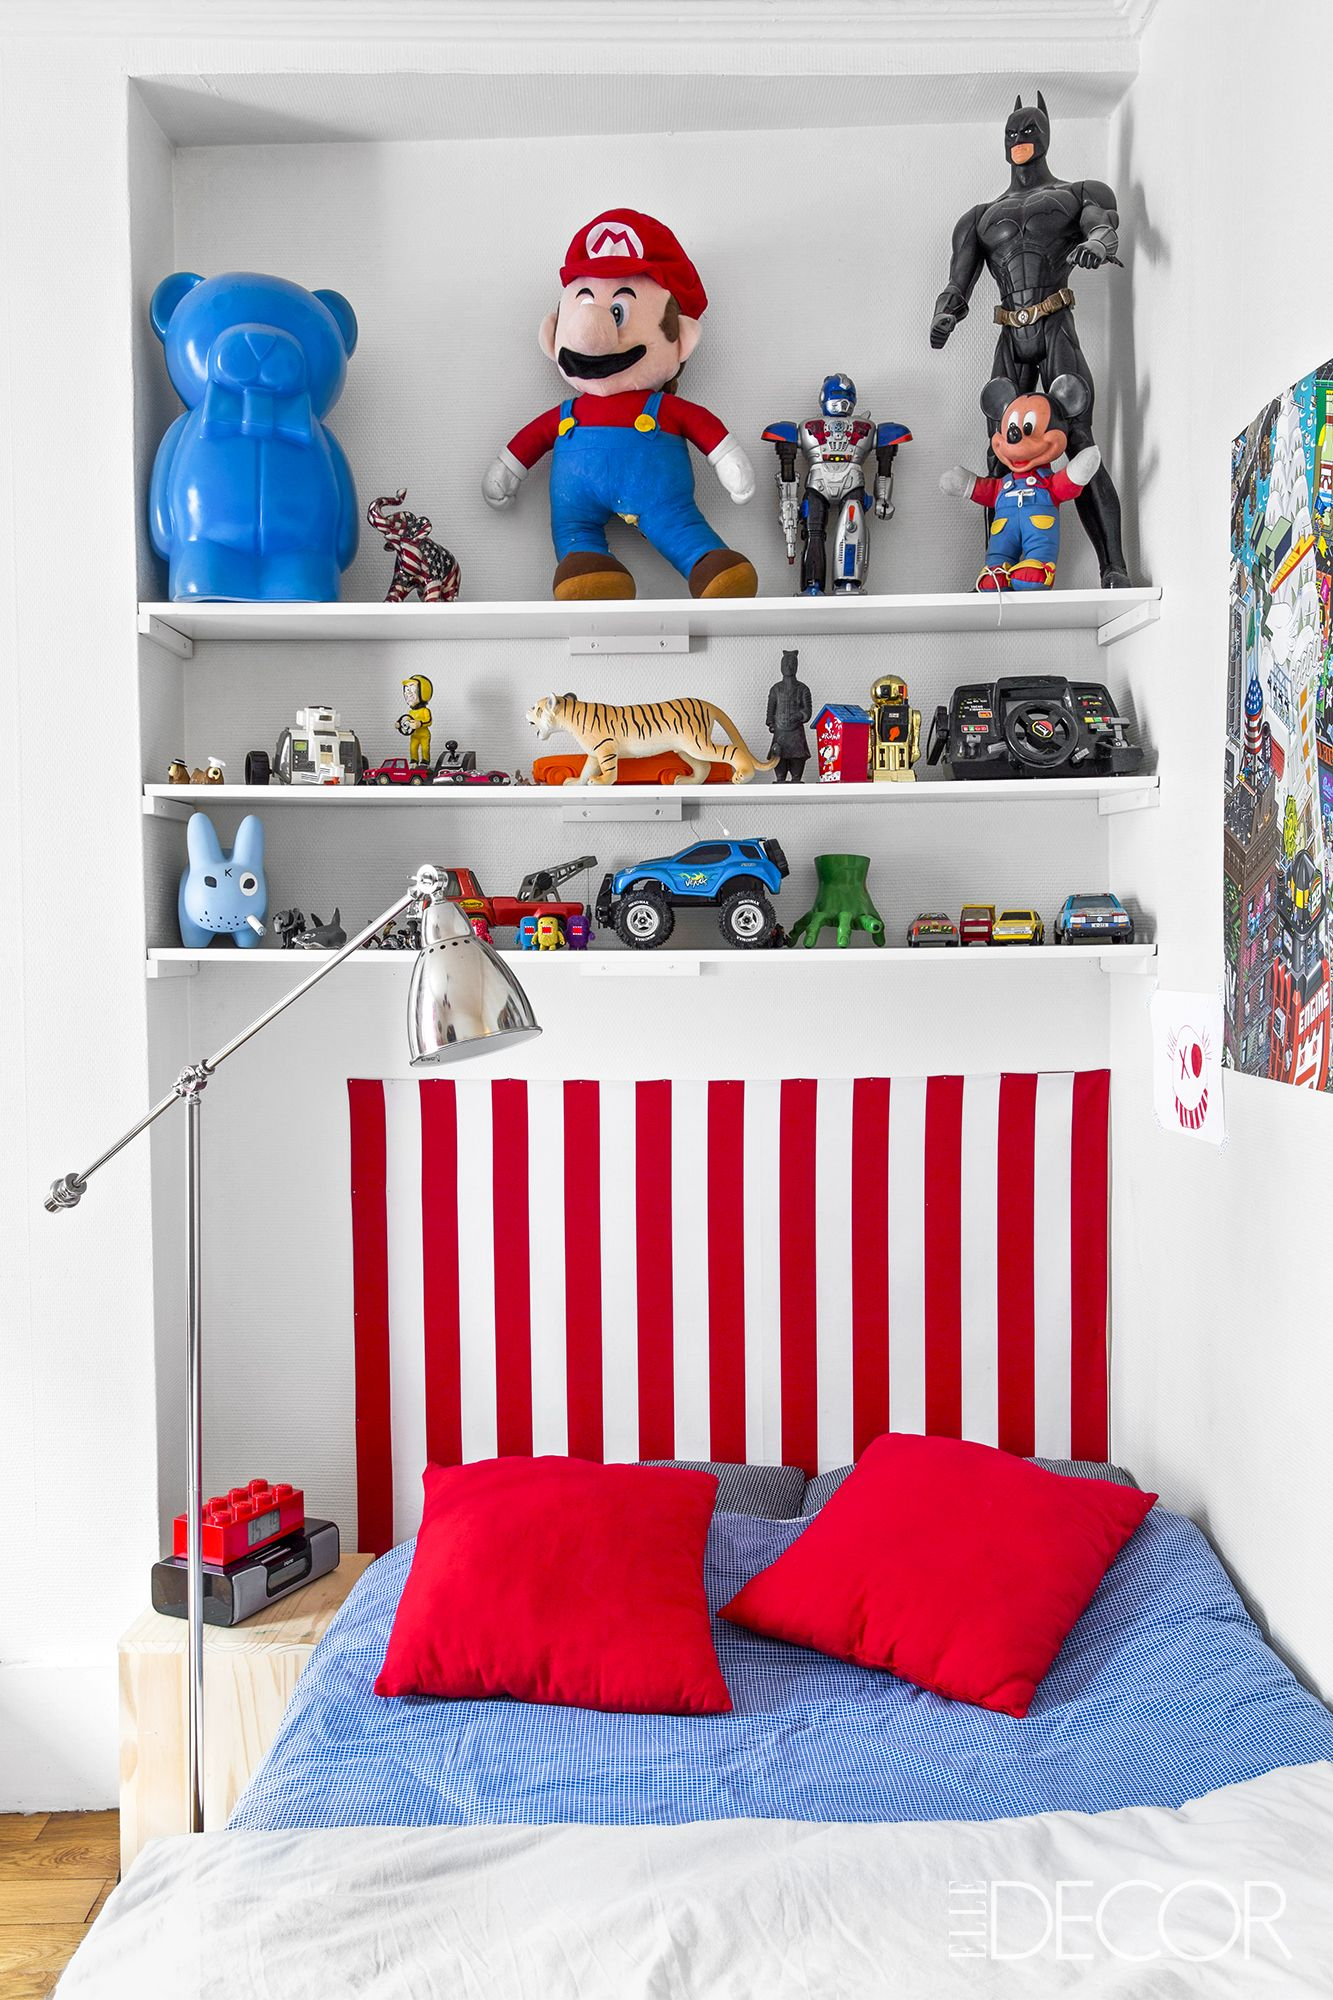 kids room decorating ideas 18 Cool Kids' Room Decorating Ideas   Kids Room Decor kids room decorating ideas